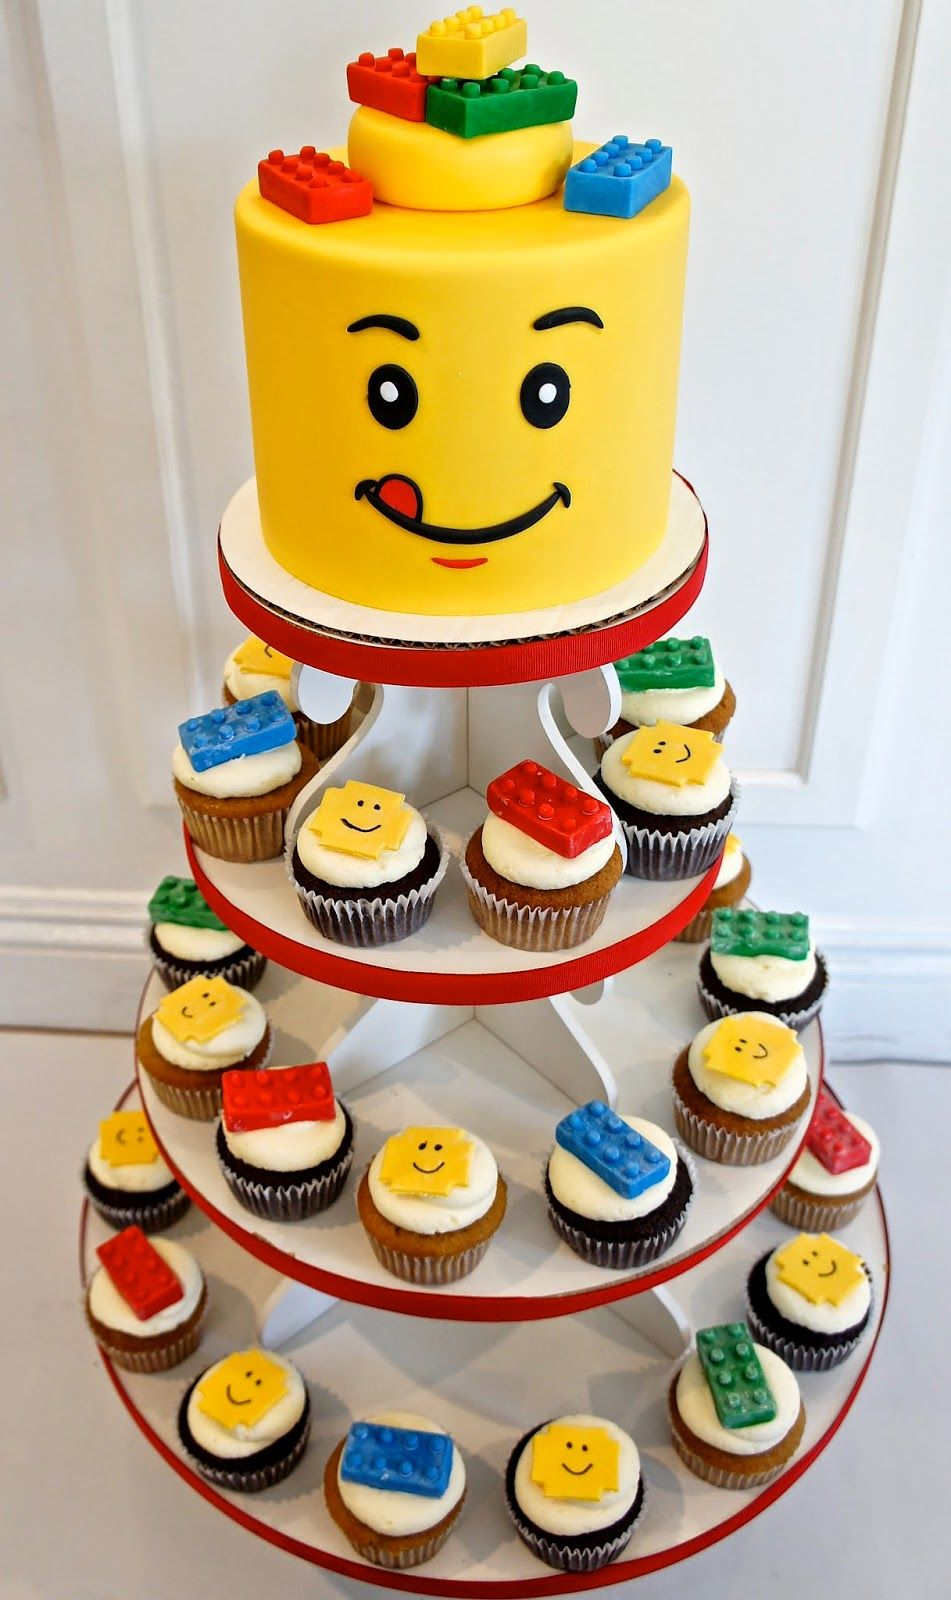 Marvelous Cute Lego Cake With Cupcakes Except For The Legos On His Head Funny Birthday Cards Online Sheoxdamsfinfo